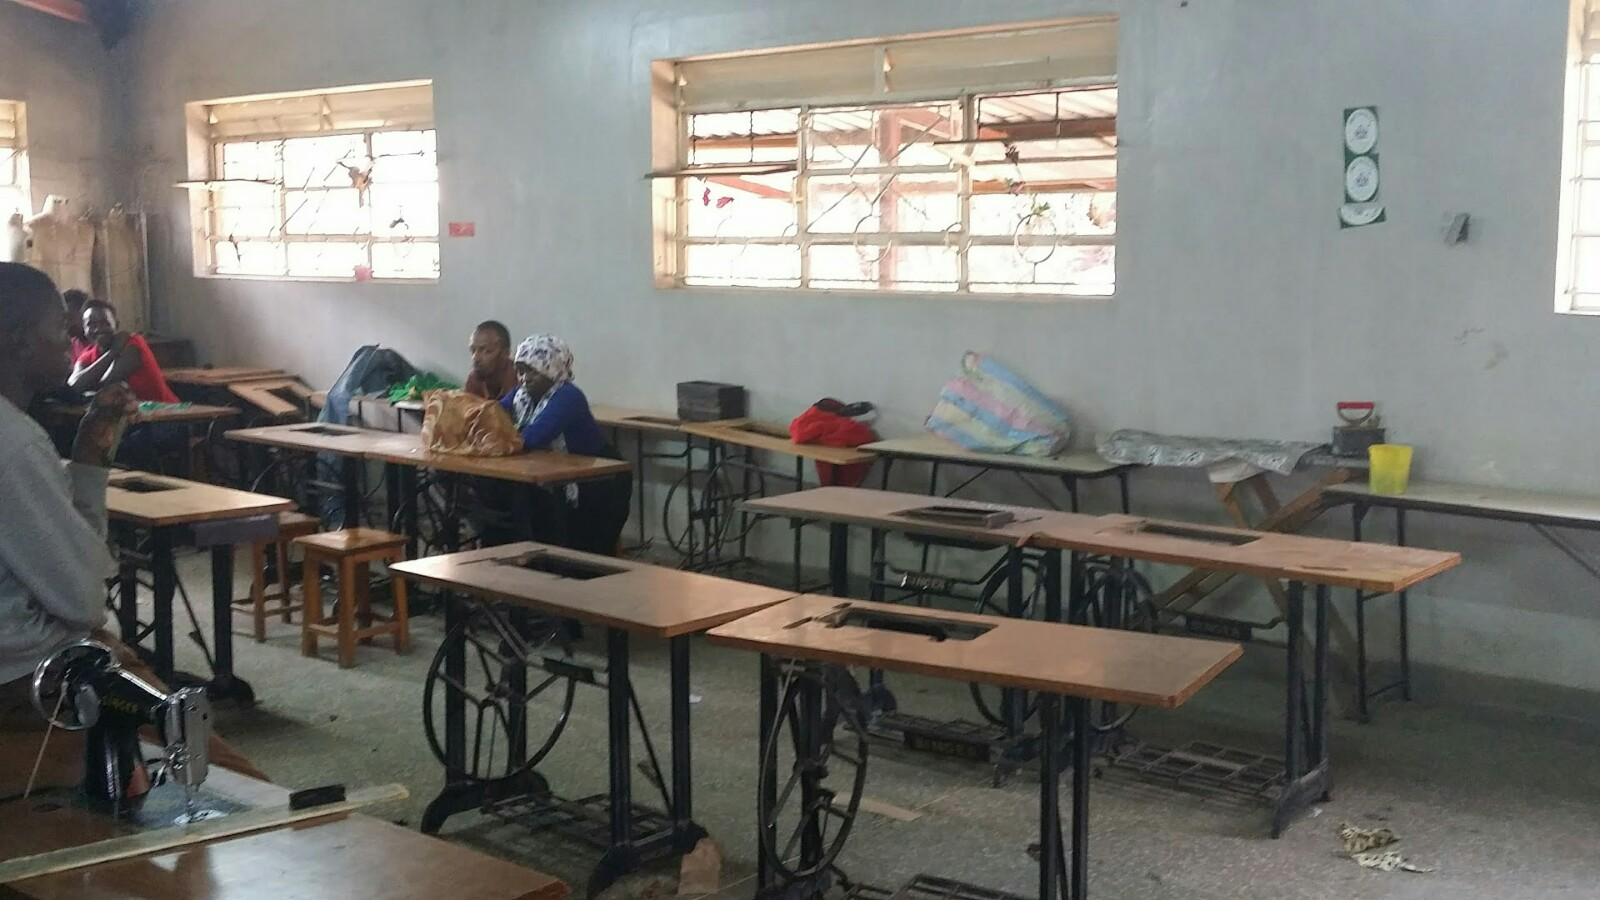 Students in sewing shop at the Vocational Center at Eastleigh Center in Kenya.